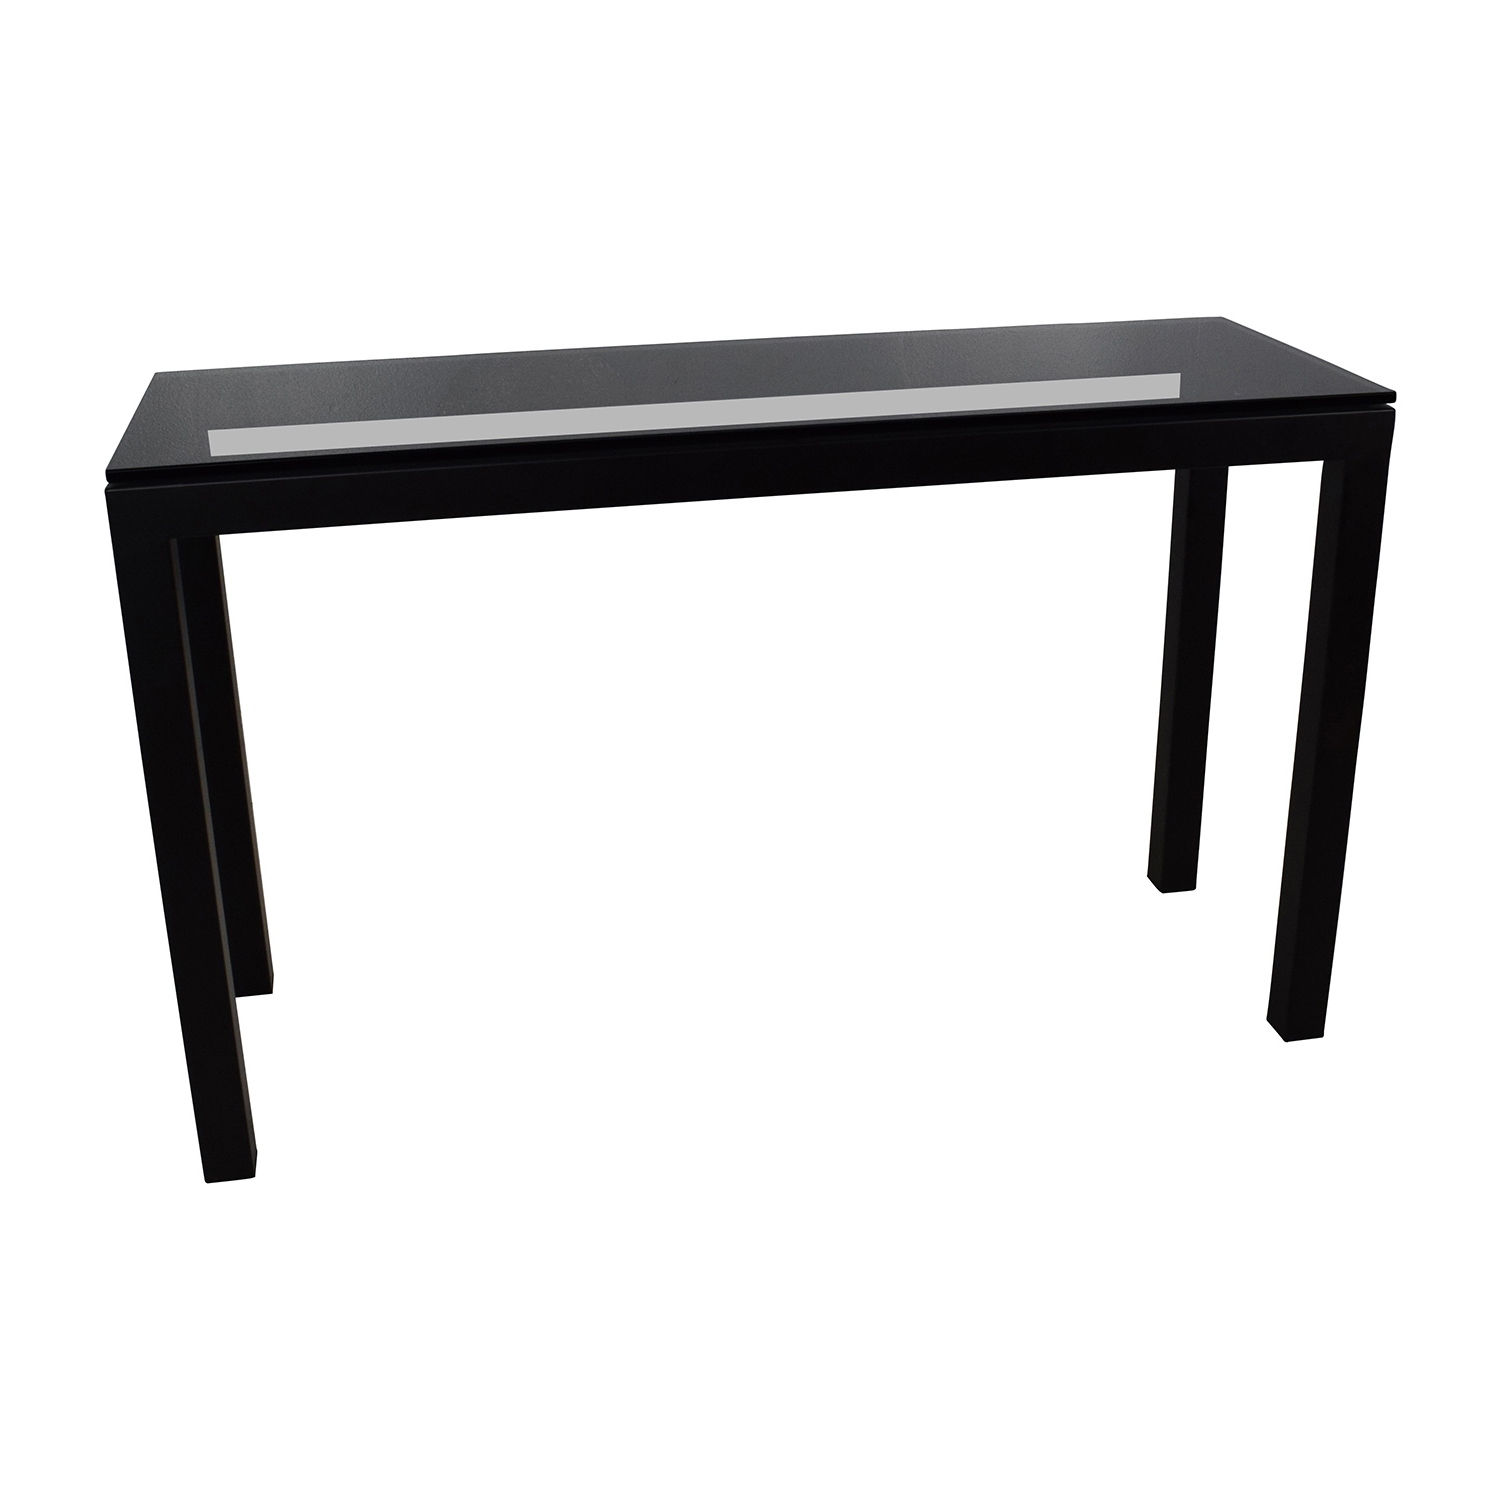 Black Parsons Console Table @wt26 | Wendycorsistaubcommunity Throughout Parsons Black Marble Top & Stainless Steel Base 48x16 Console Tables (View 7 of 20)